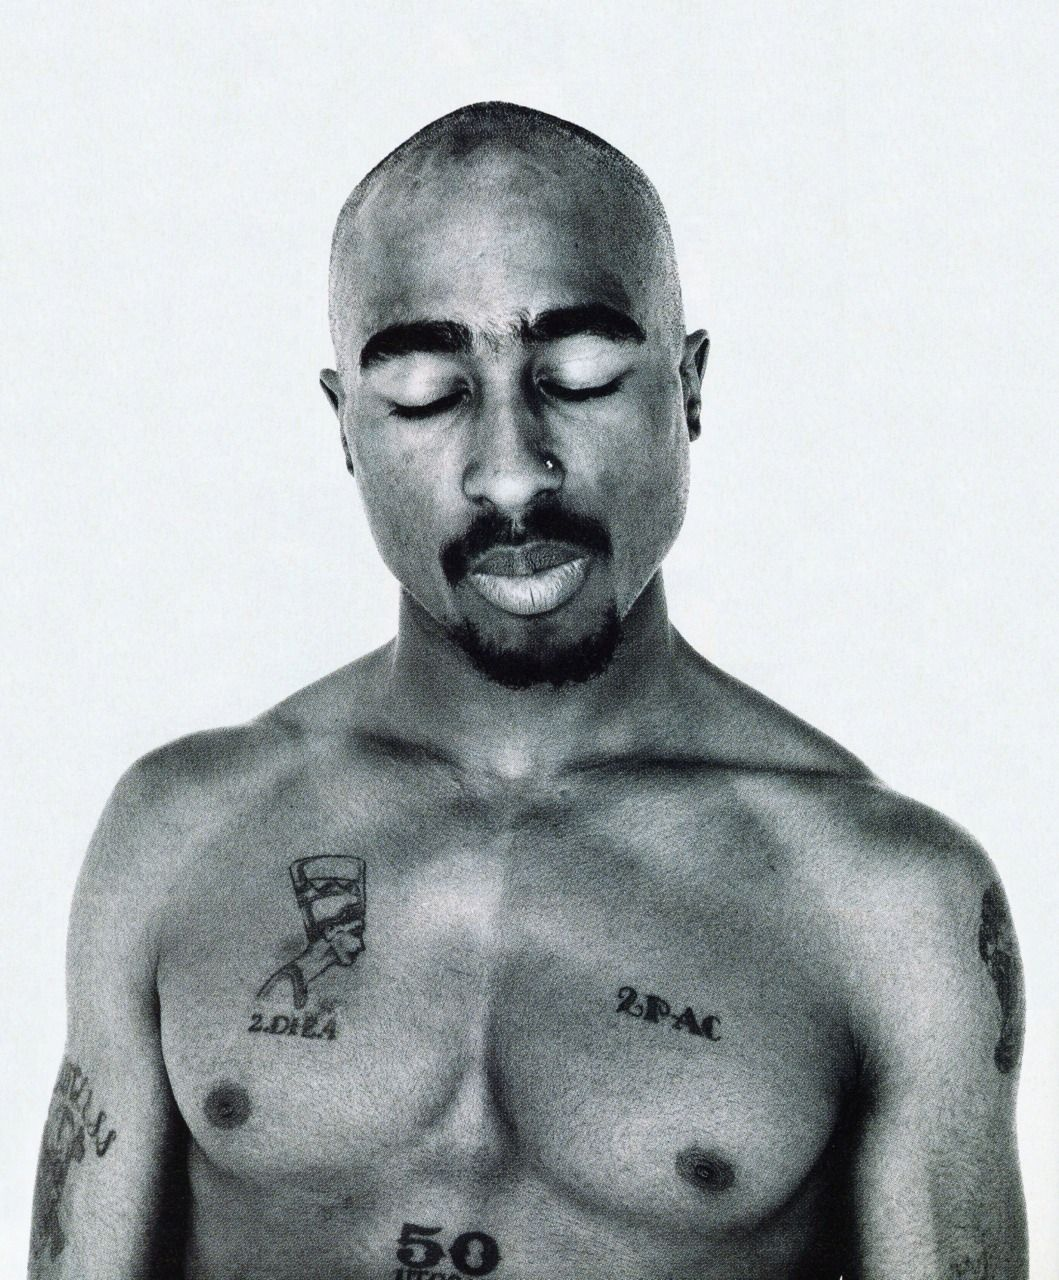 c9cd405559a35 Tupac's Tattoos Are So Famous, But Why? Meanings behind Tupac's Tattoos -  Tattoo Me Now